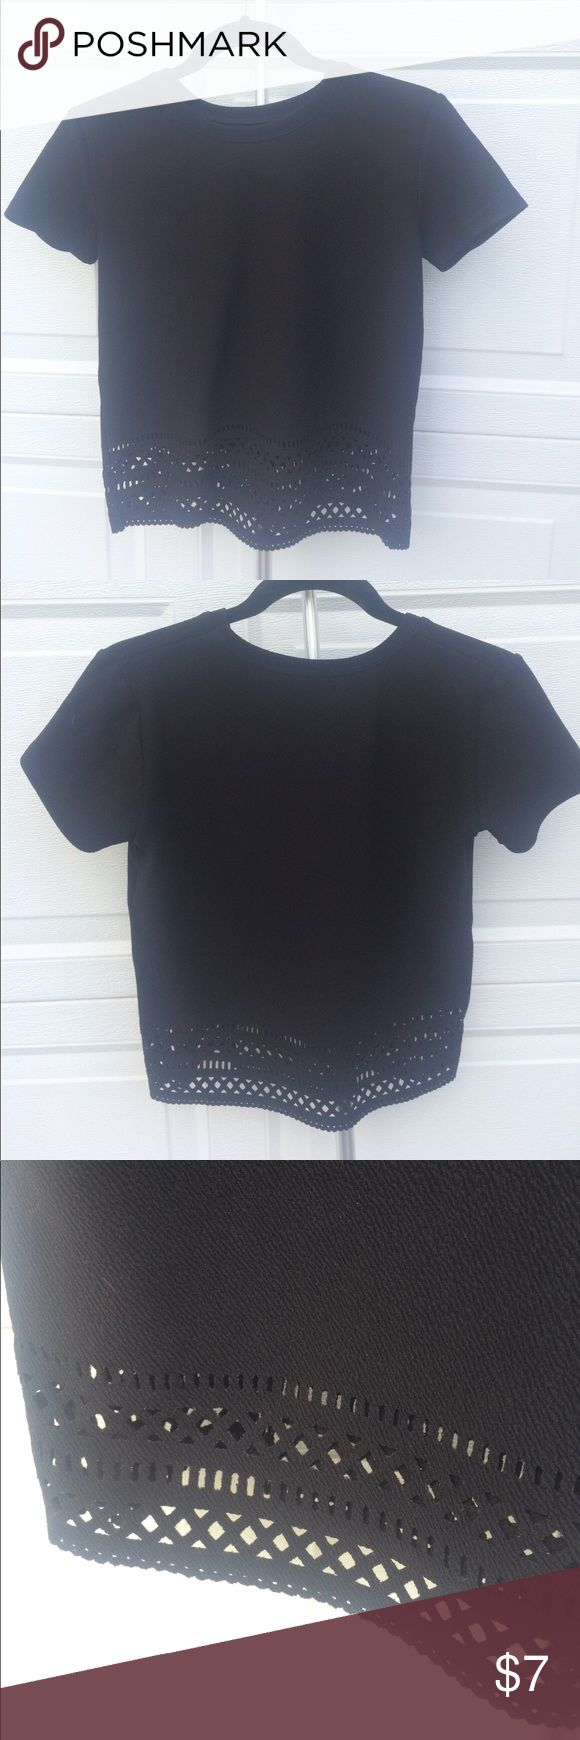 Black Short Sleeve Top 100% polyester. Size M, doesn't have a tag with the size but I wear size medium and it fits great. Has a nice stretch to it as well. Bottom has a beautiful pattern. Super comfortable t-shirt style with a nicer feel. Shirt is a shorter style. Buru Tops